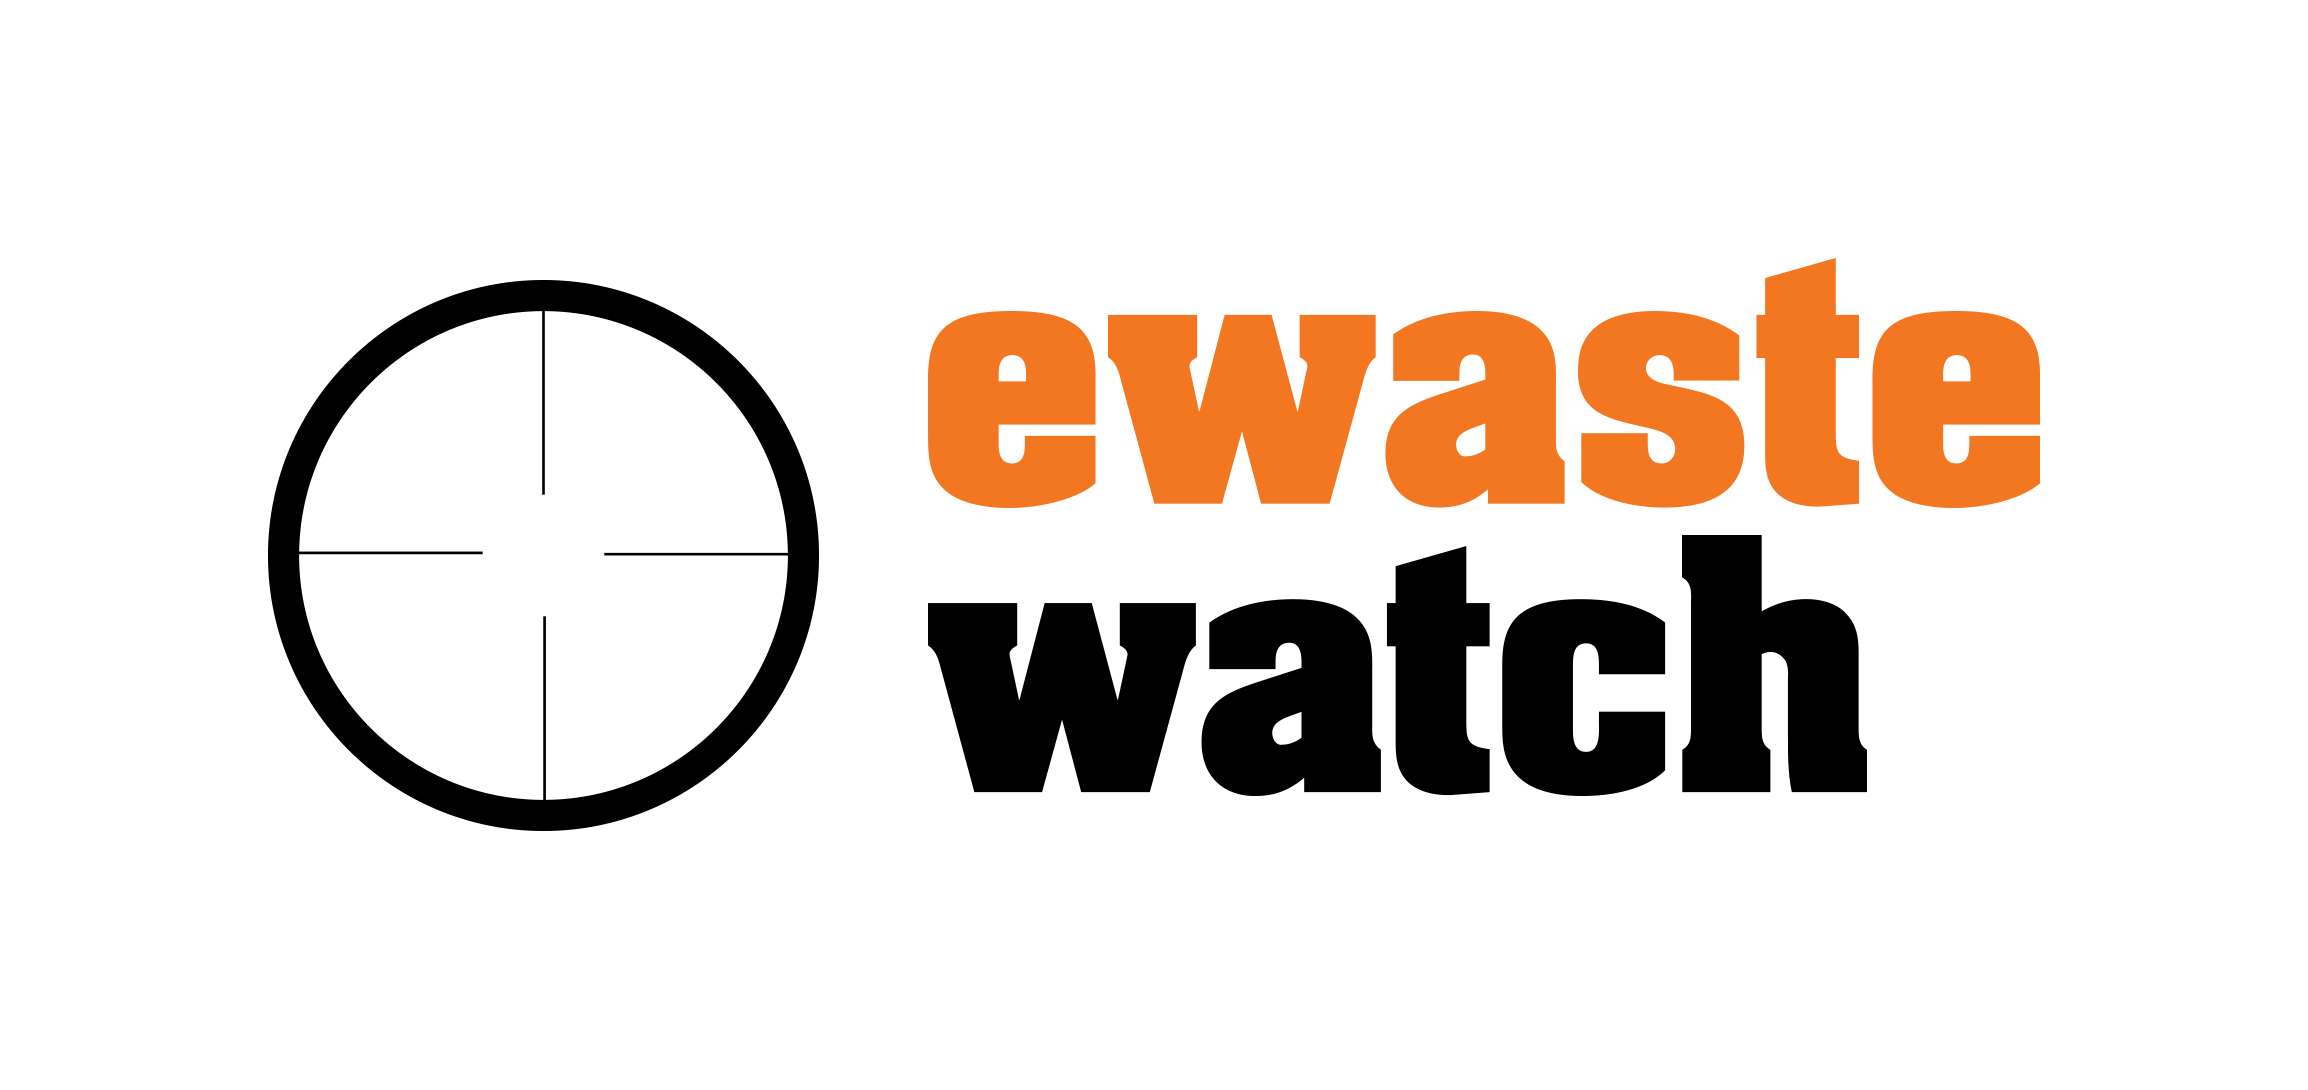 Ewaste Watch Institute